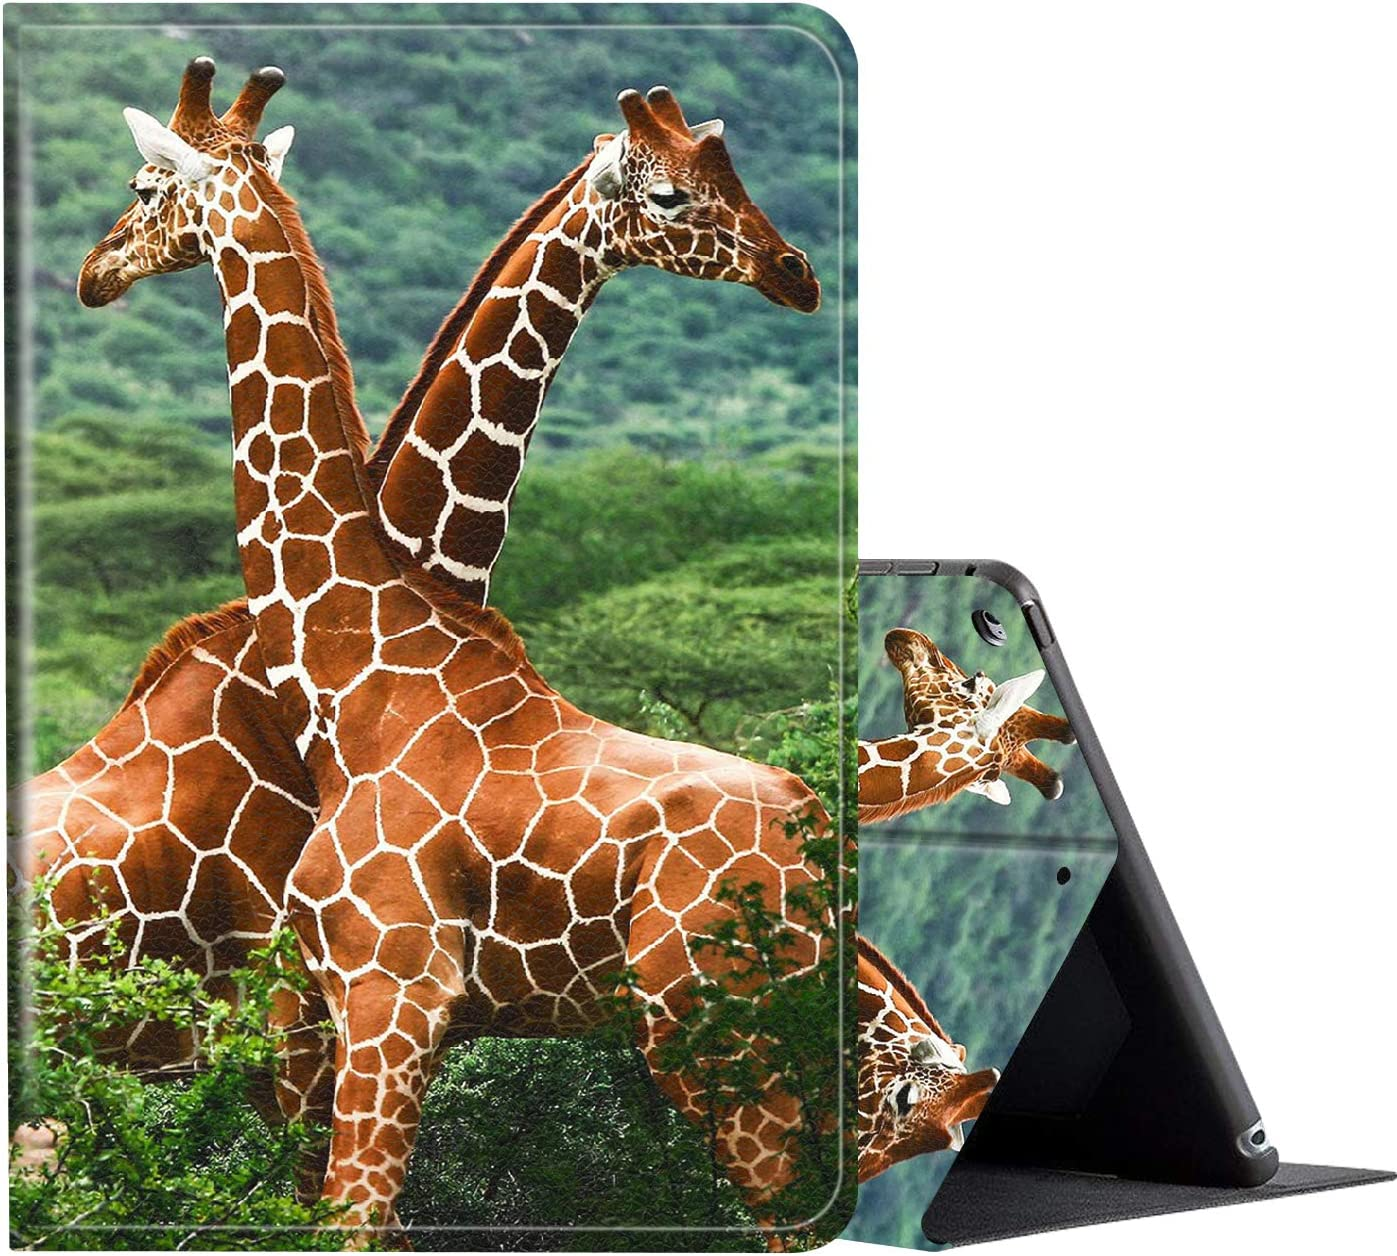 iPad 10.2 Case (2020/2019) 8th/7th Generation ipad Case,Amook Adjustable Non-Slip Folio Stand with Auto Wake/Sleep Smart Cover for New Apple iPad 8/7 Gen 10.2 inch-Cute Giraffe